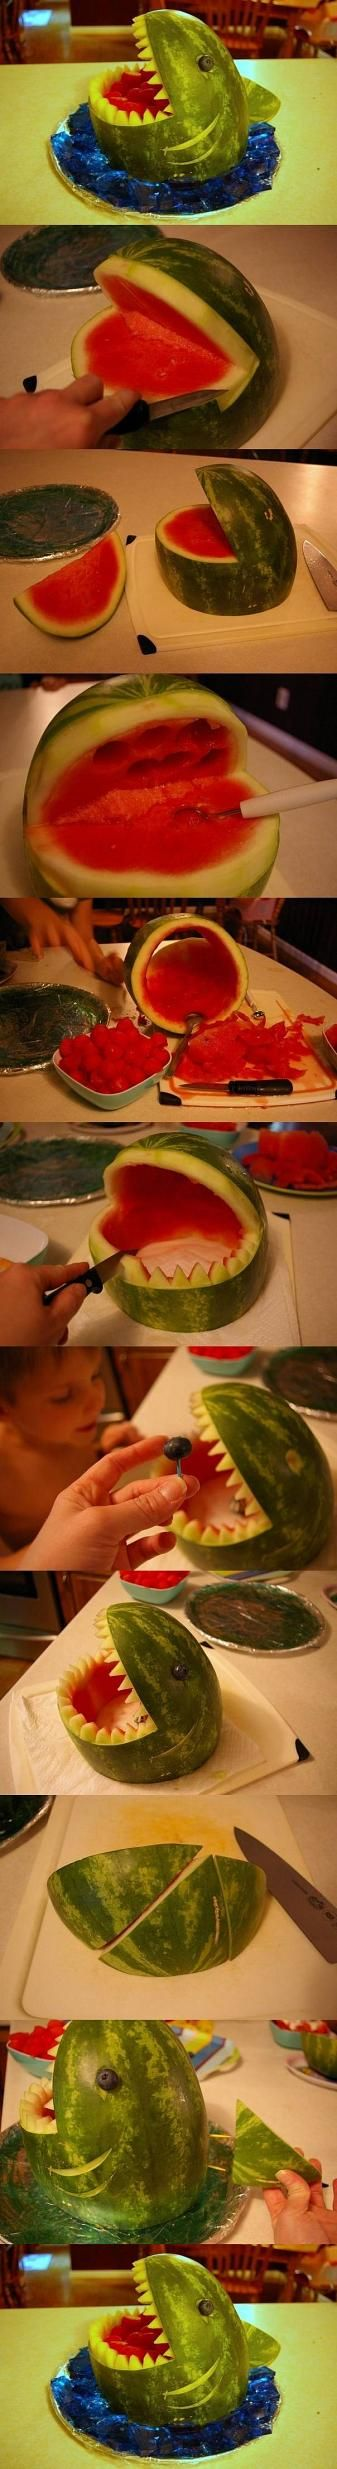 DIY Watermelon Shark Carving Internet Tutorial DIY Projects | UsefulDIY.com